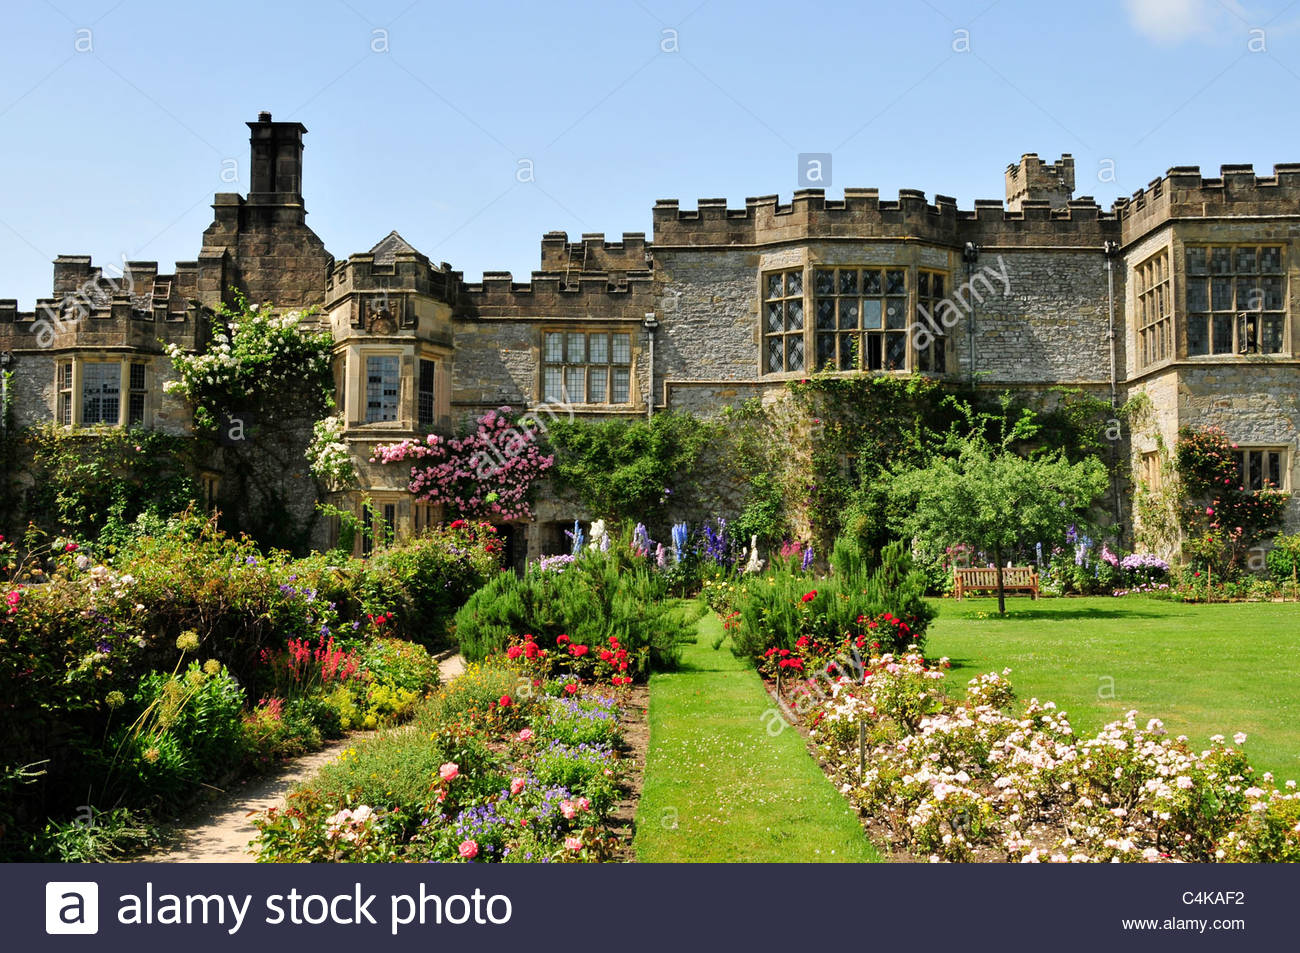 Haddon Hall Bakewell, Tourist attraction Haddon Hall near Bakewell in Derbyshire front ...